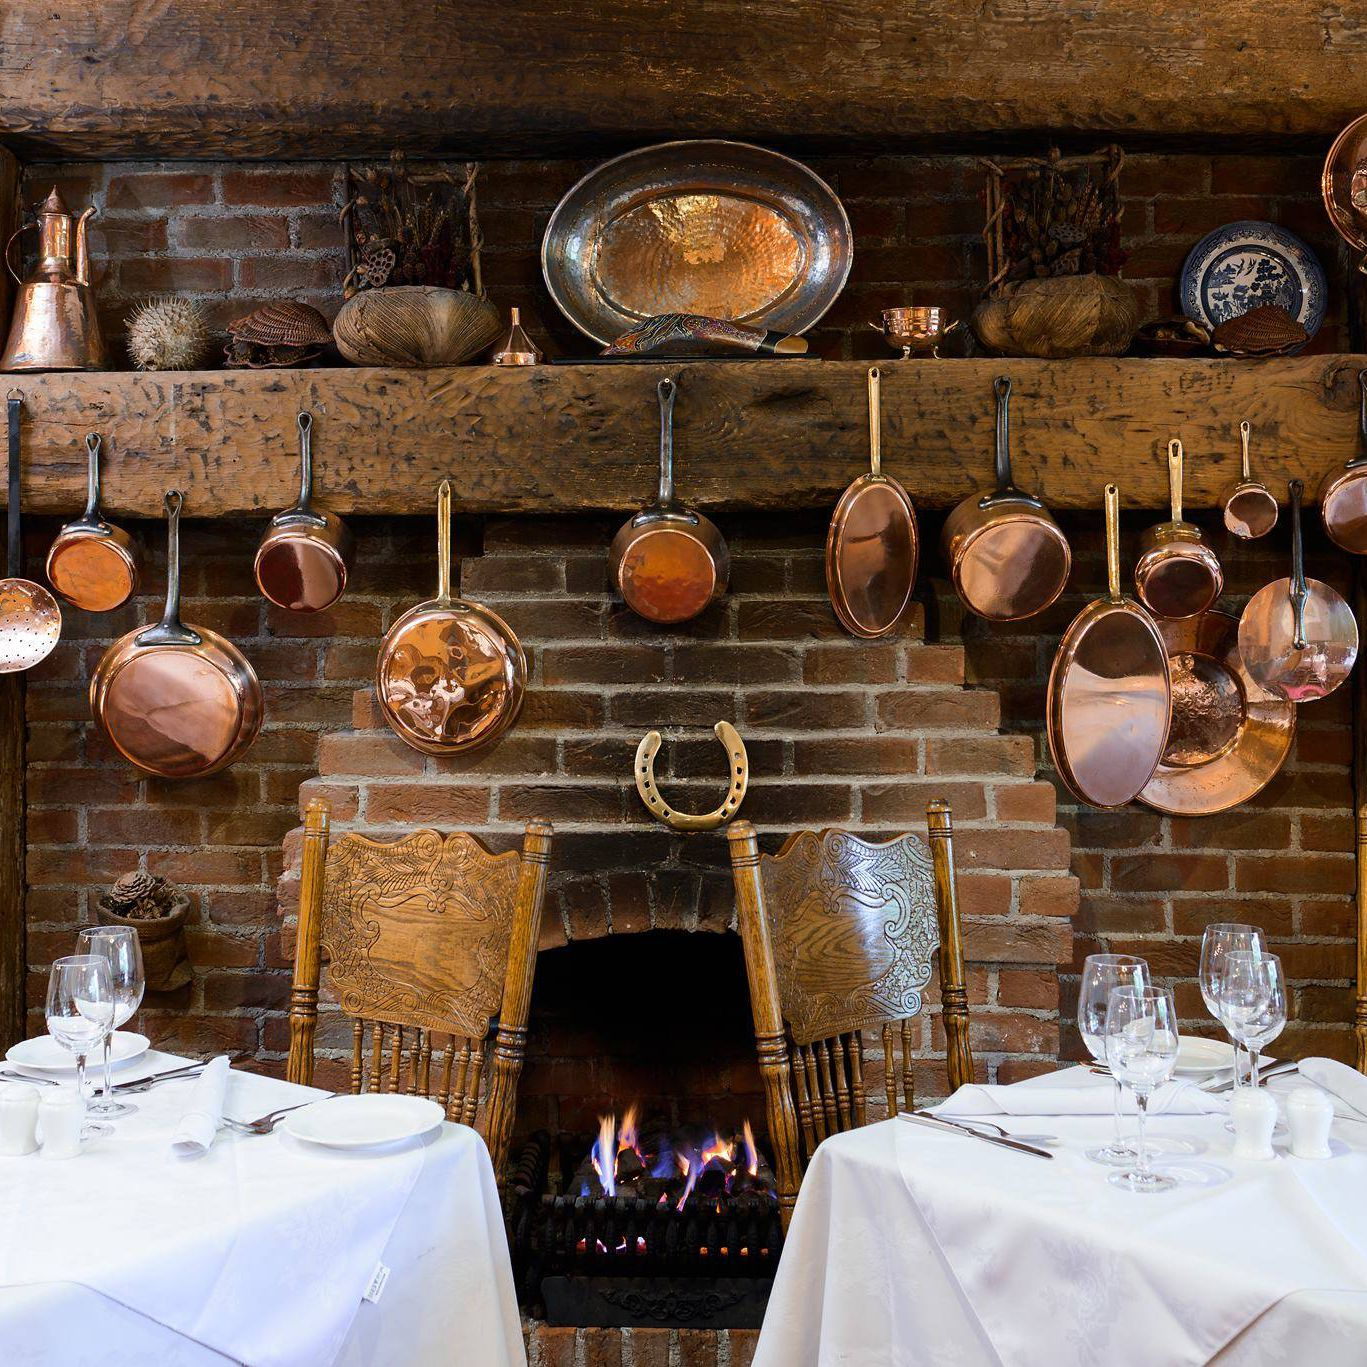 The Top 11 Places to Eat in Killarney, Ireland